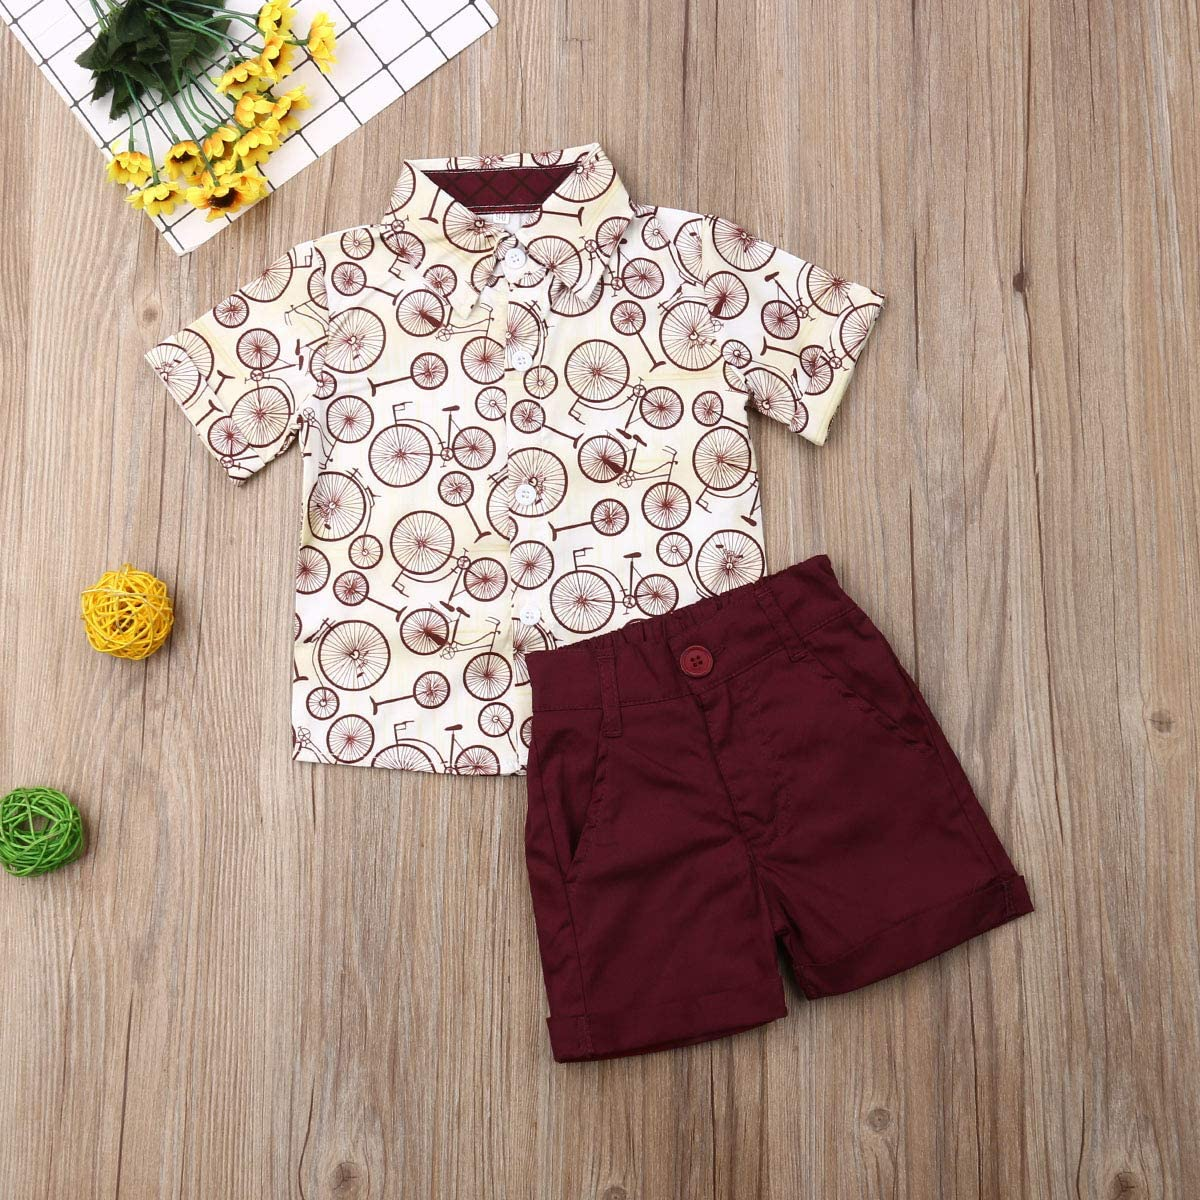 Infant Baby Boy Clothes Sets Animal Print Summer Short Sleeve Shirts and Shorts Kids 2Pcs Outfits Suit